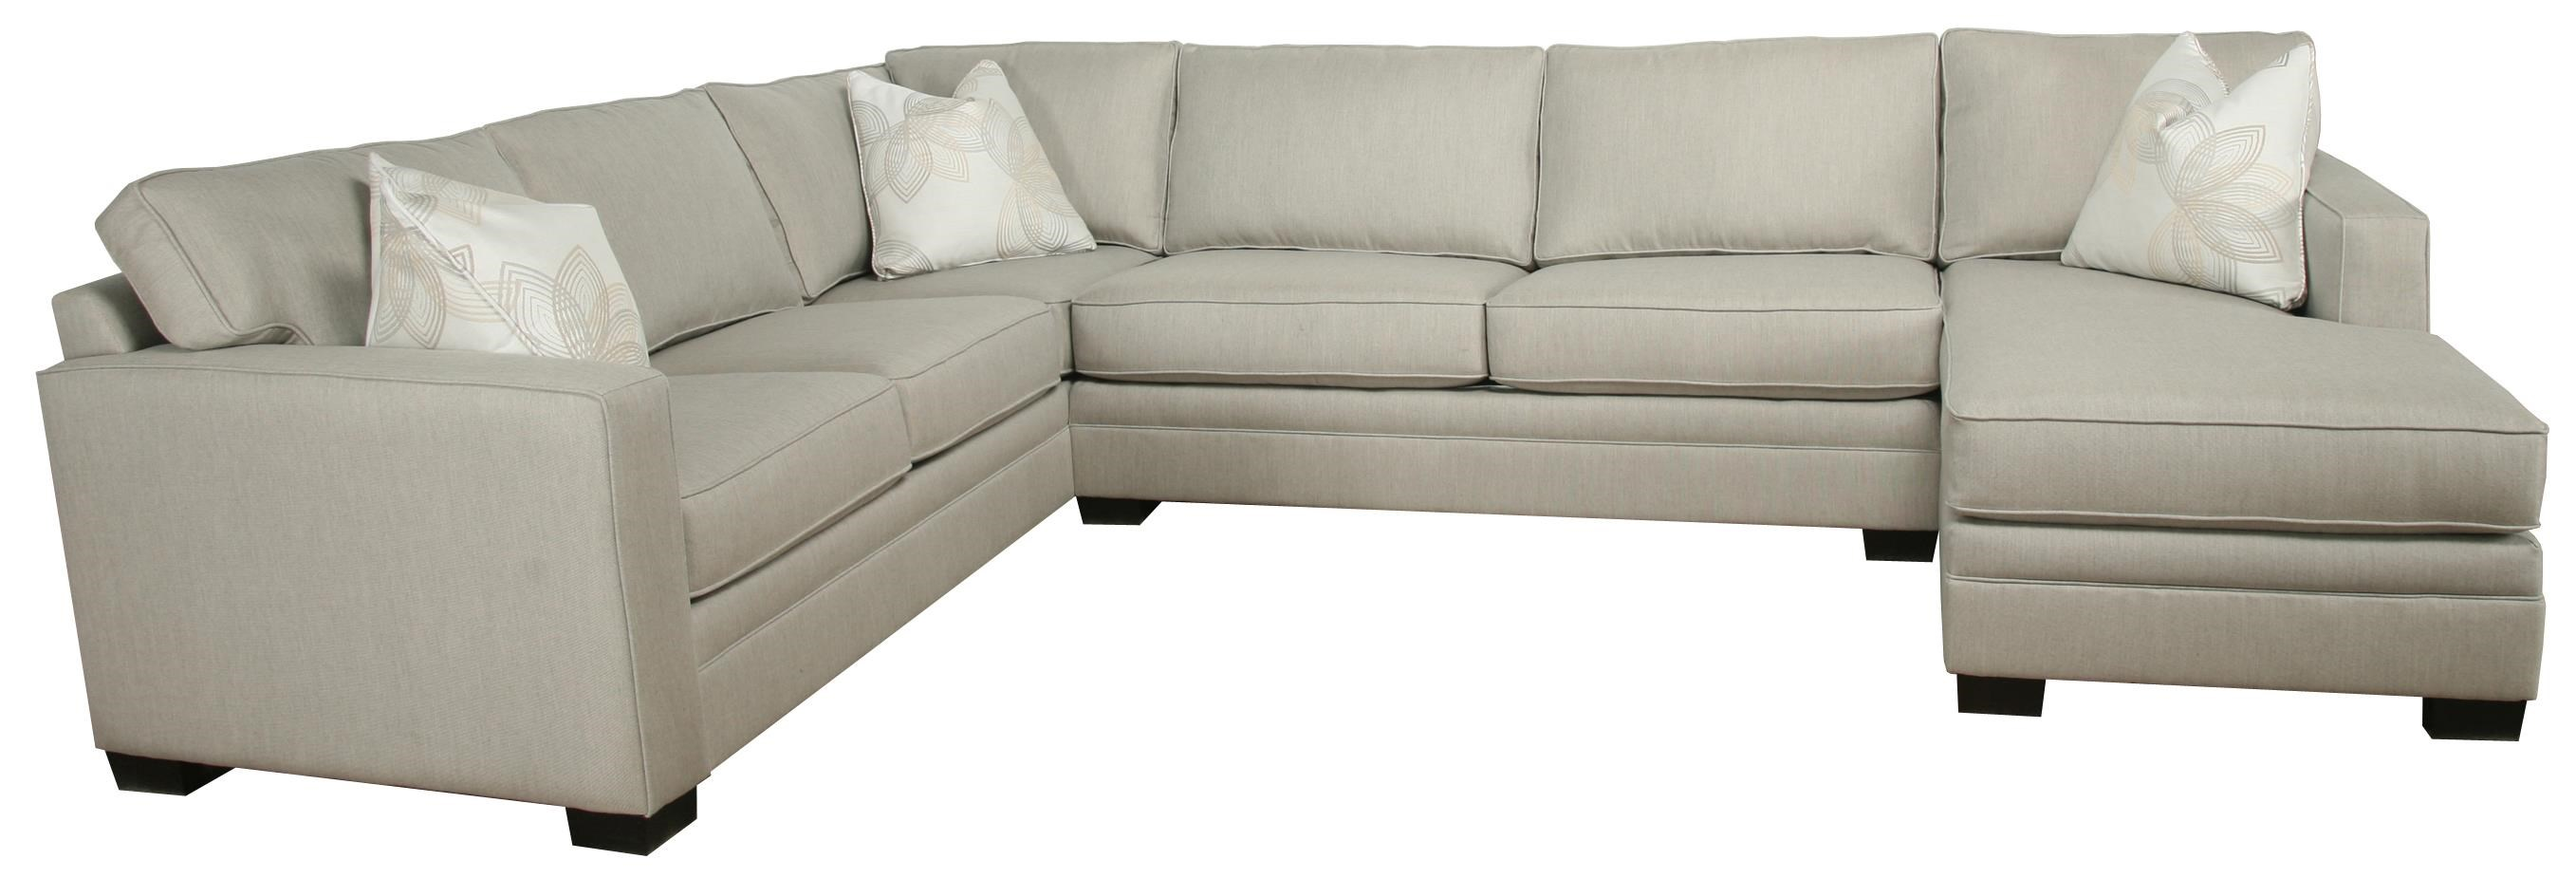 Bauhaus B13 Contemporary 3-Piece Sectional with Chaise. Sunbrella fabric  sc 1 st  Pilgrim Furniture City : sunbrella sectional - Sectionals, Sofas & Couches